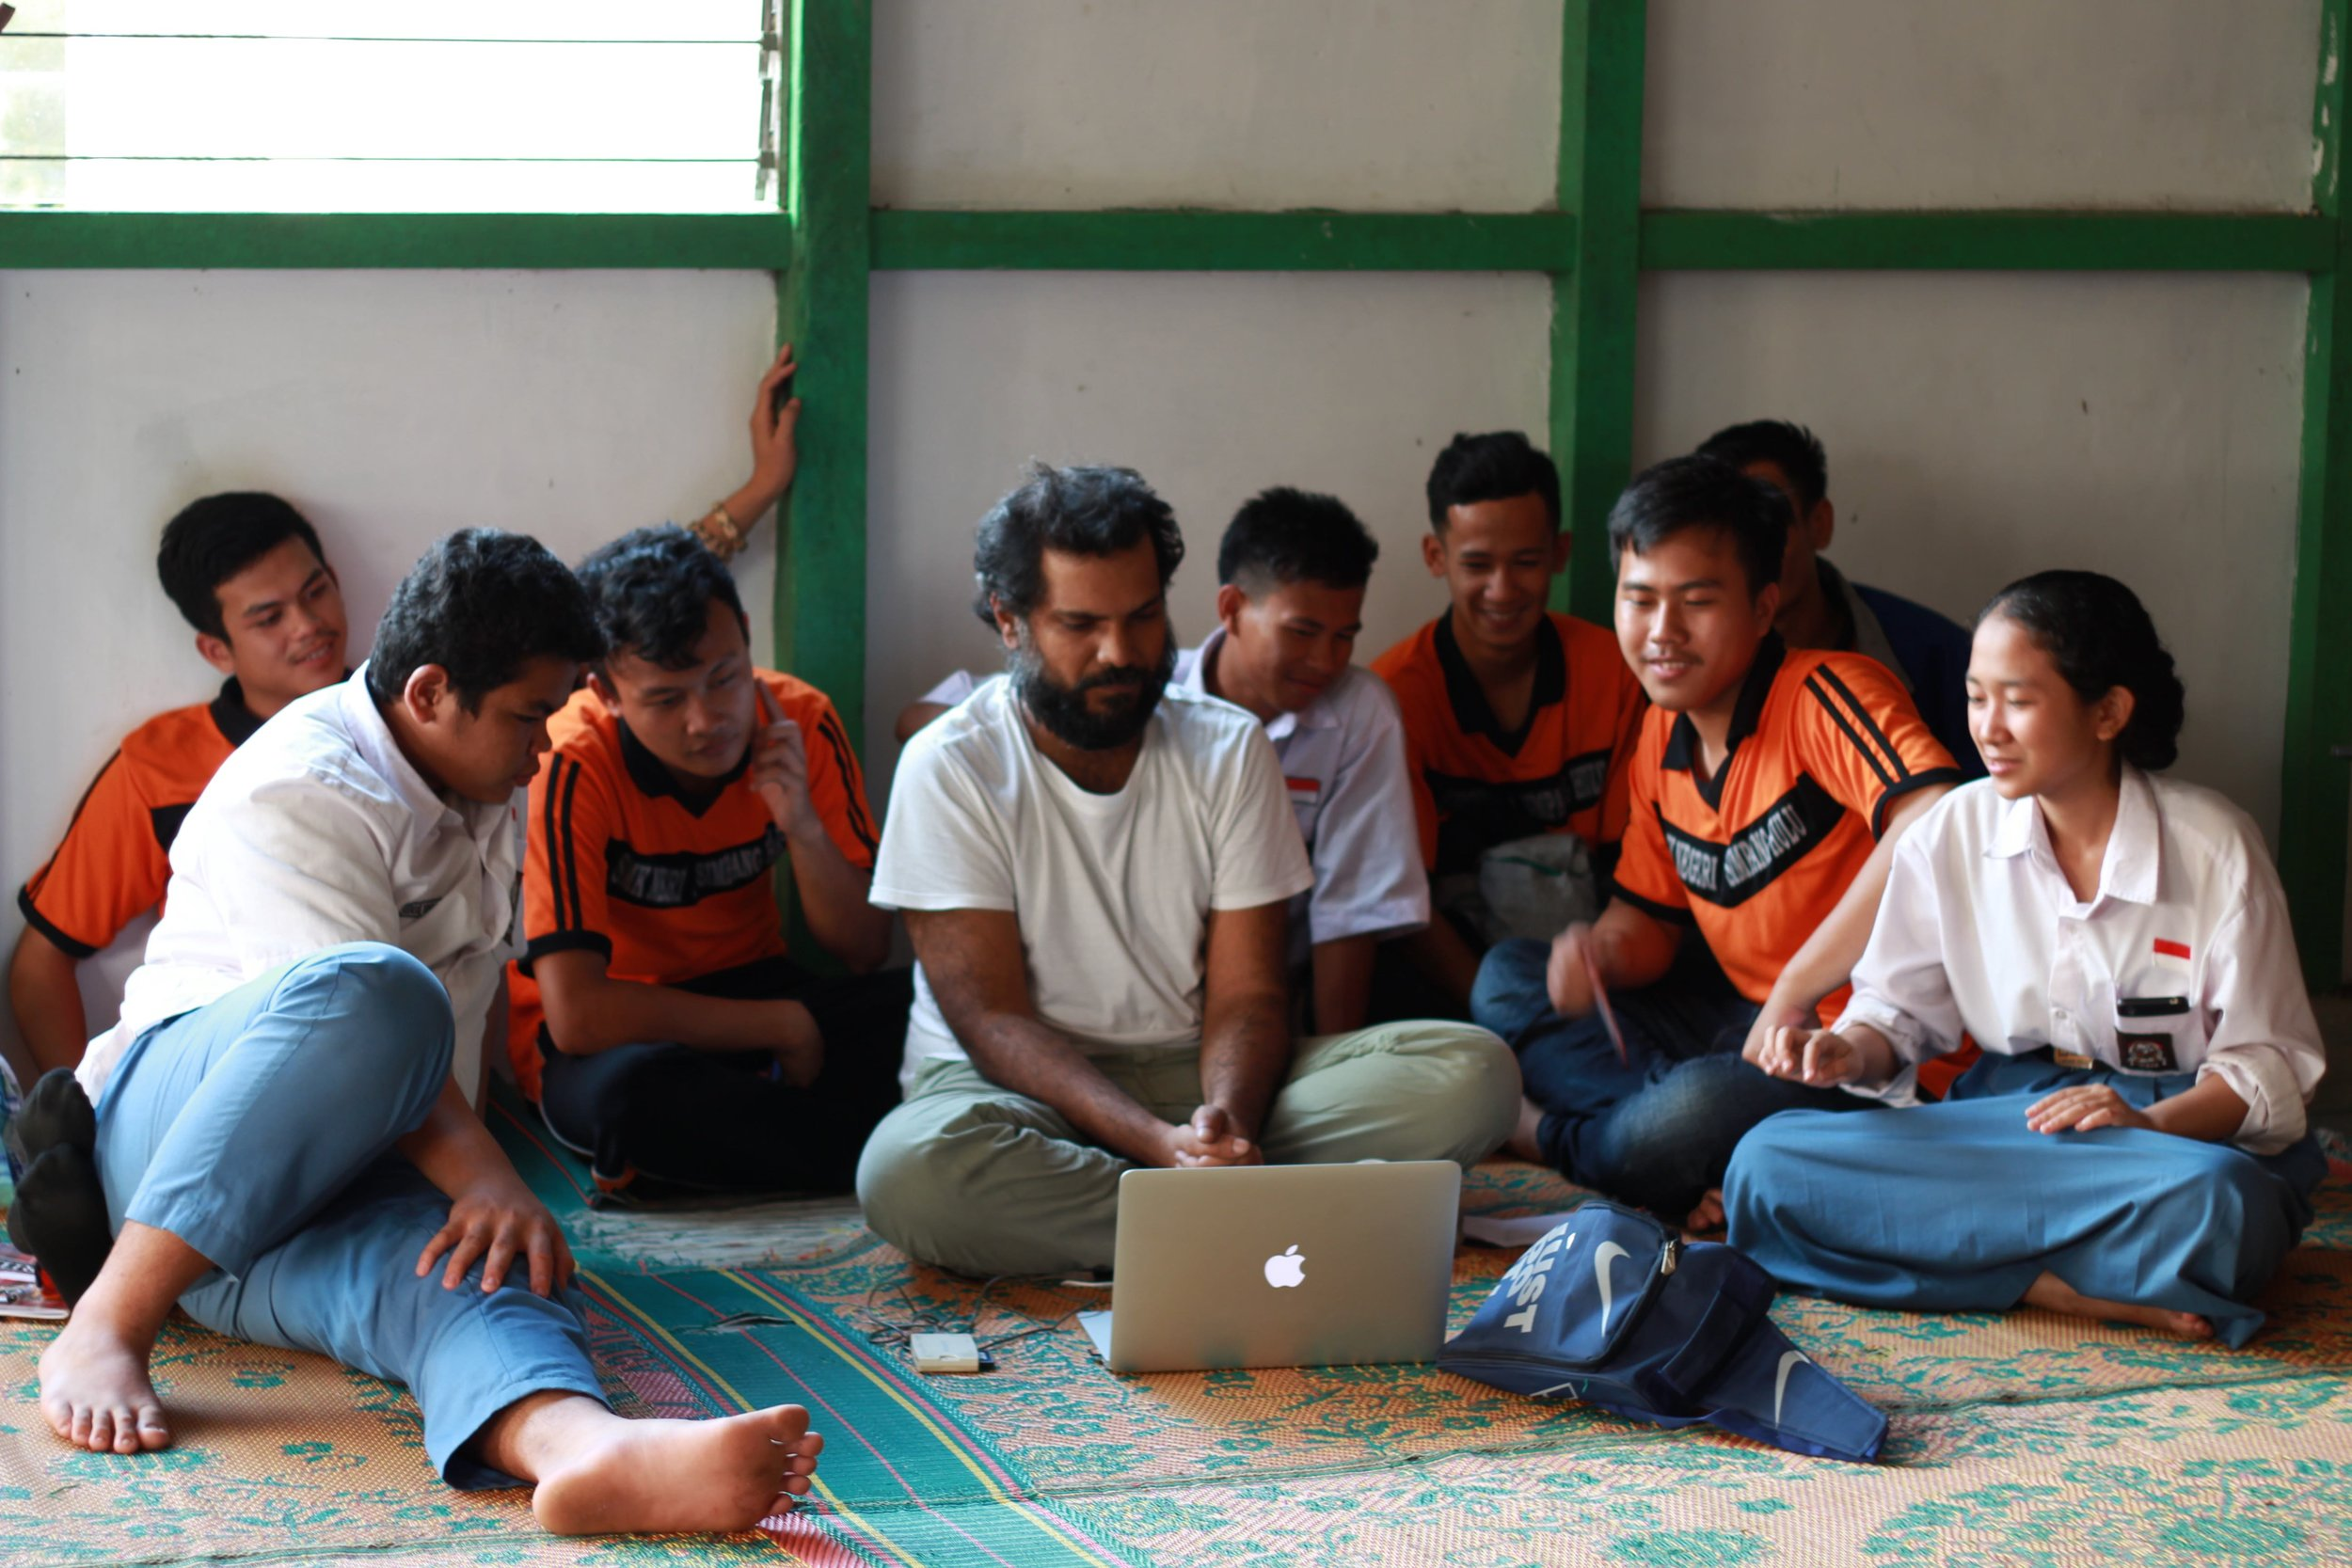 Training local students in Tahak village, Ketapang regency, West Kalimantan